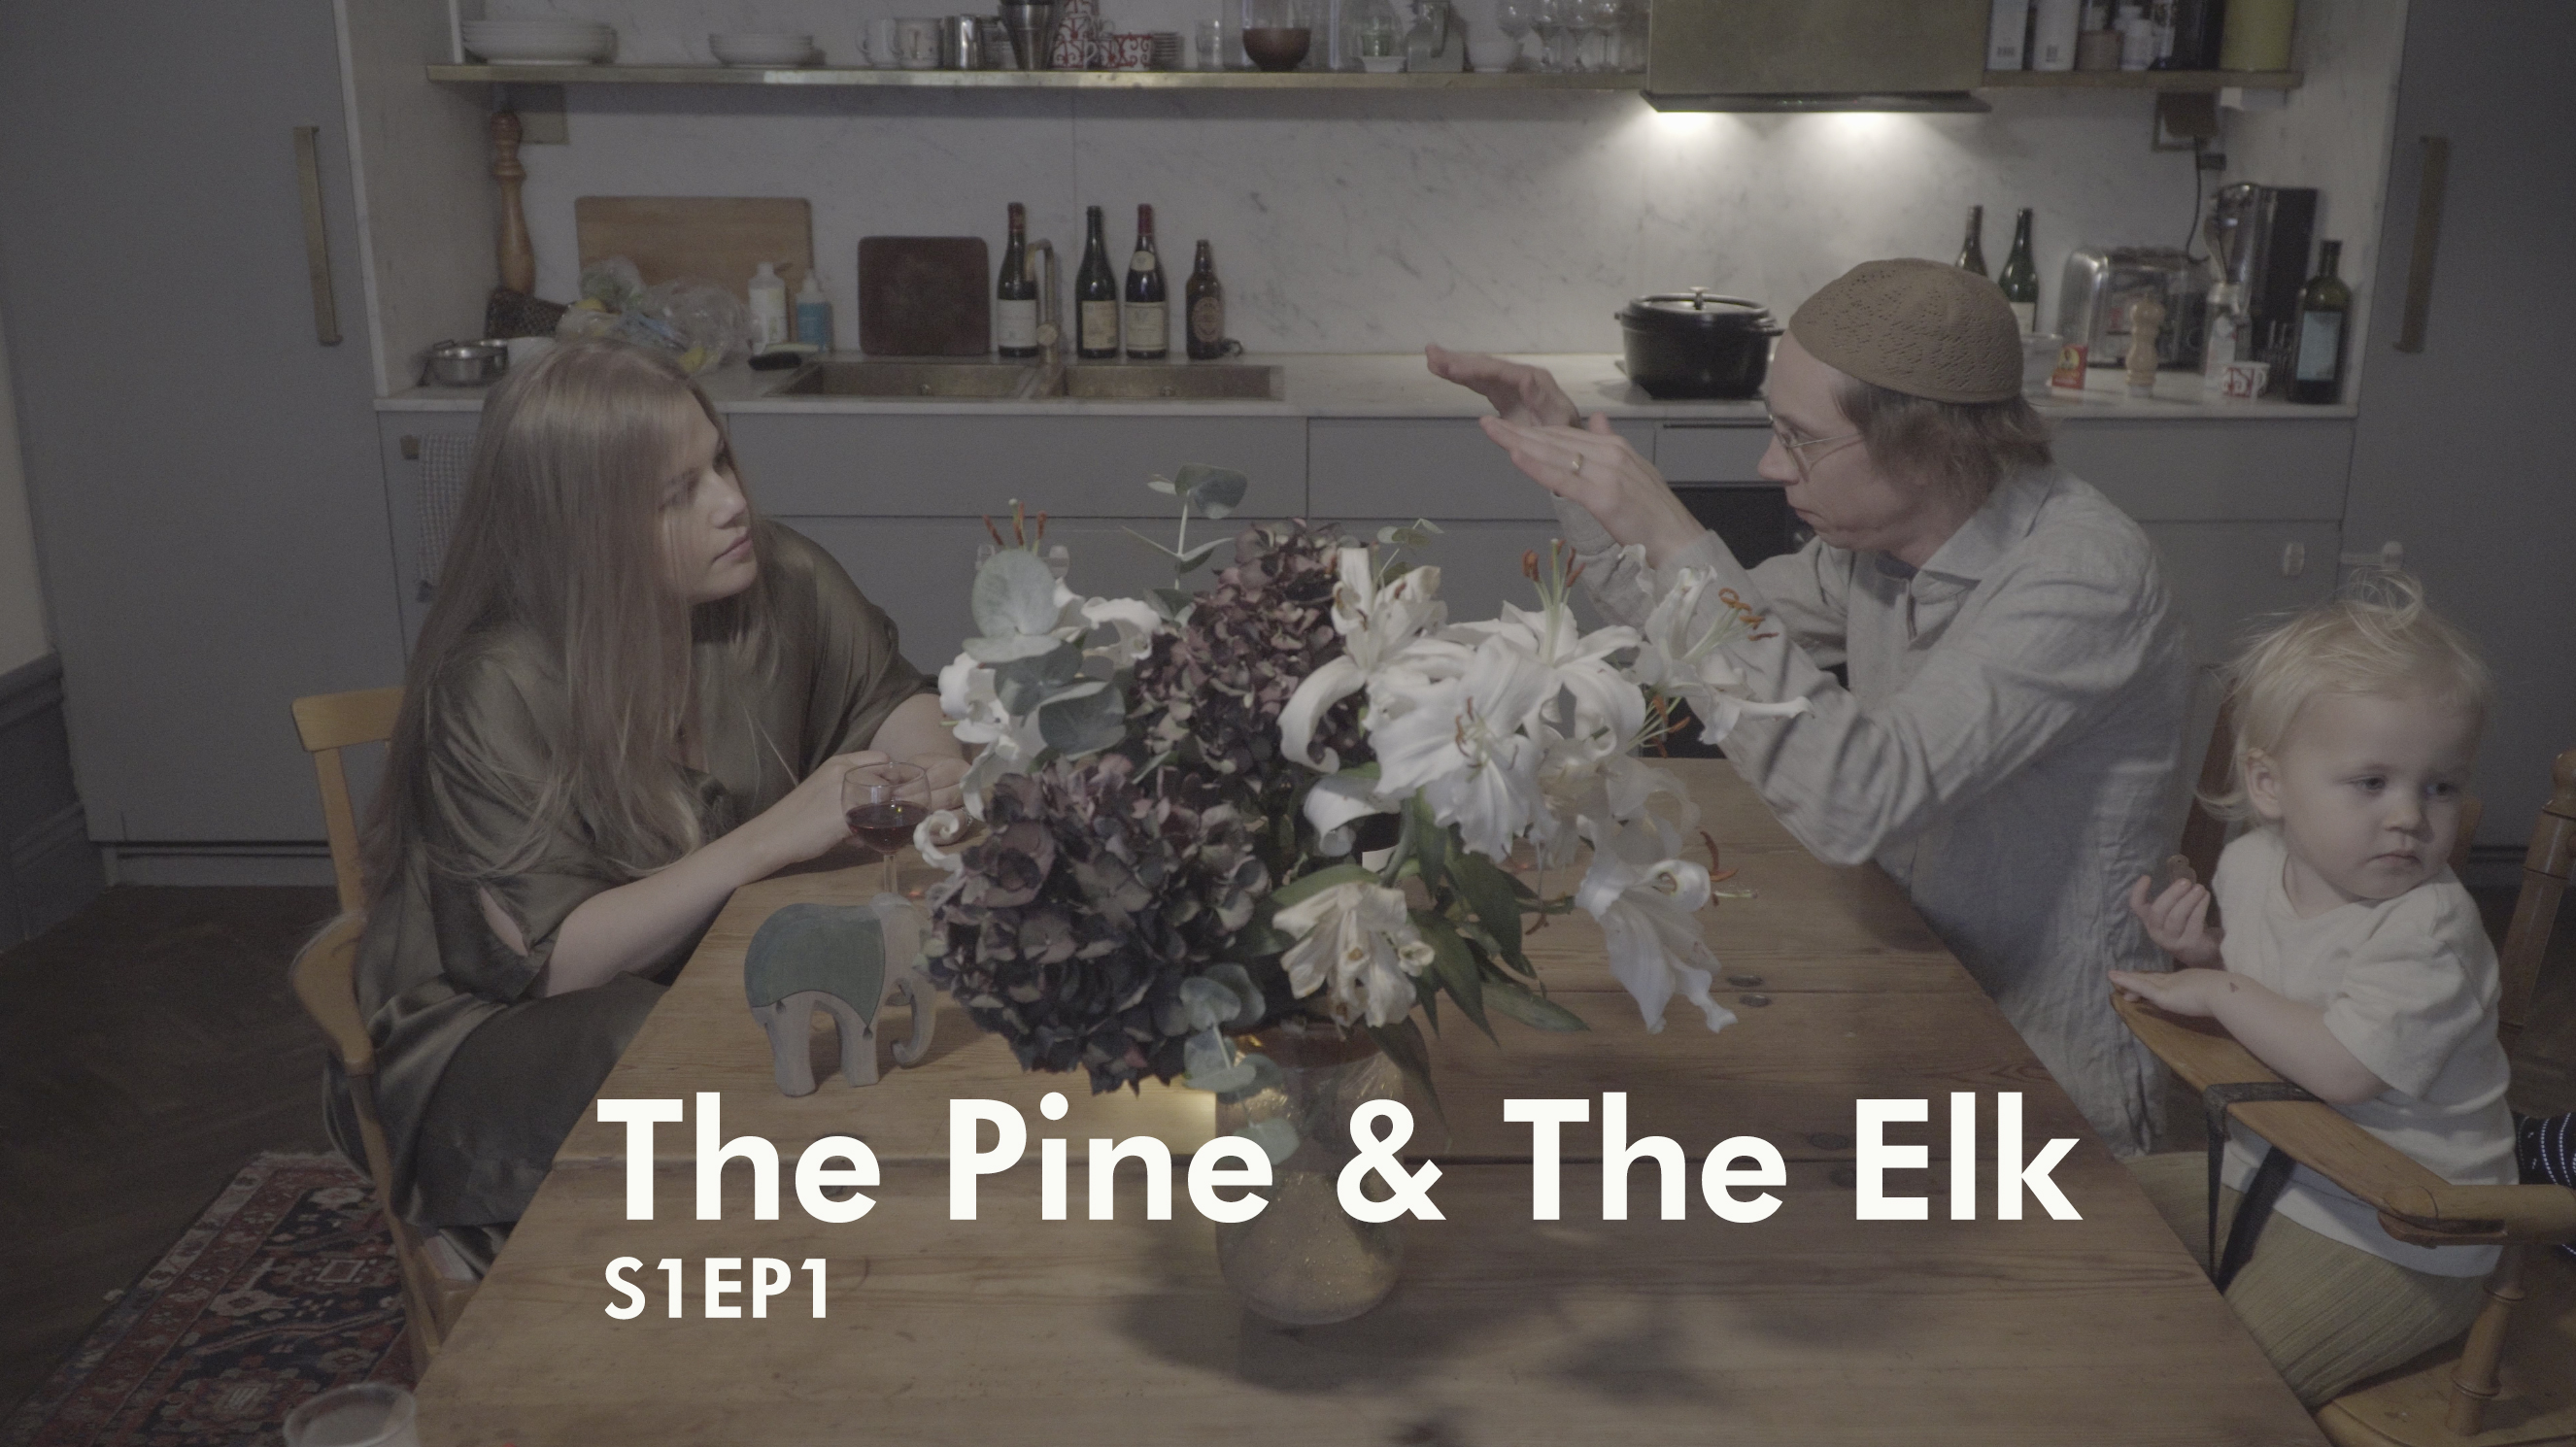 The pine and the elk